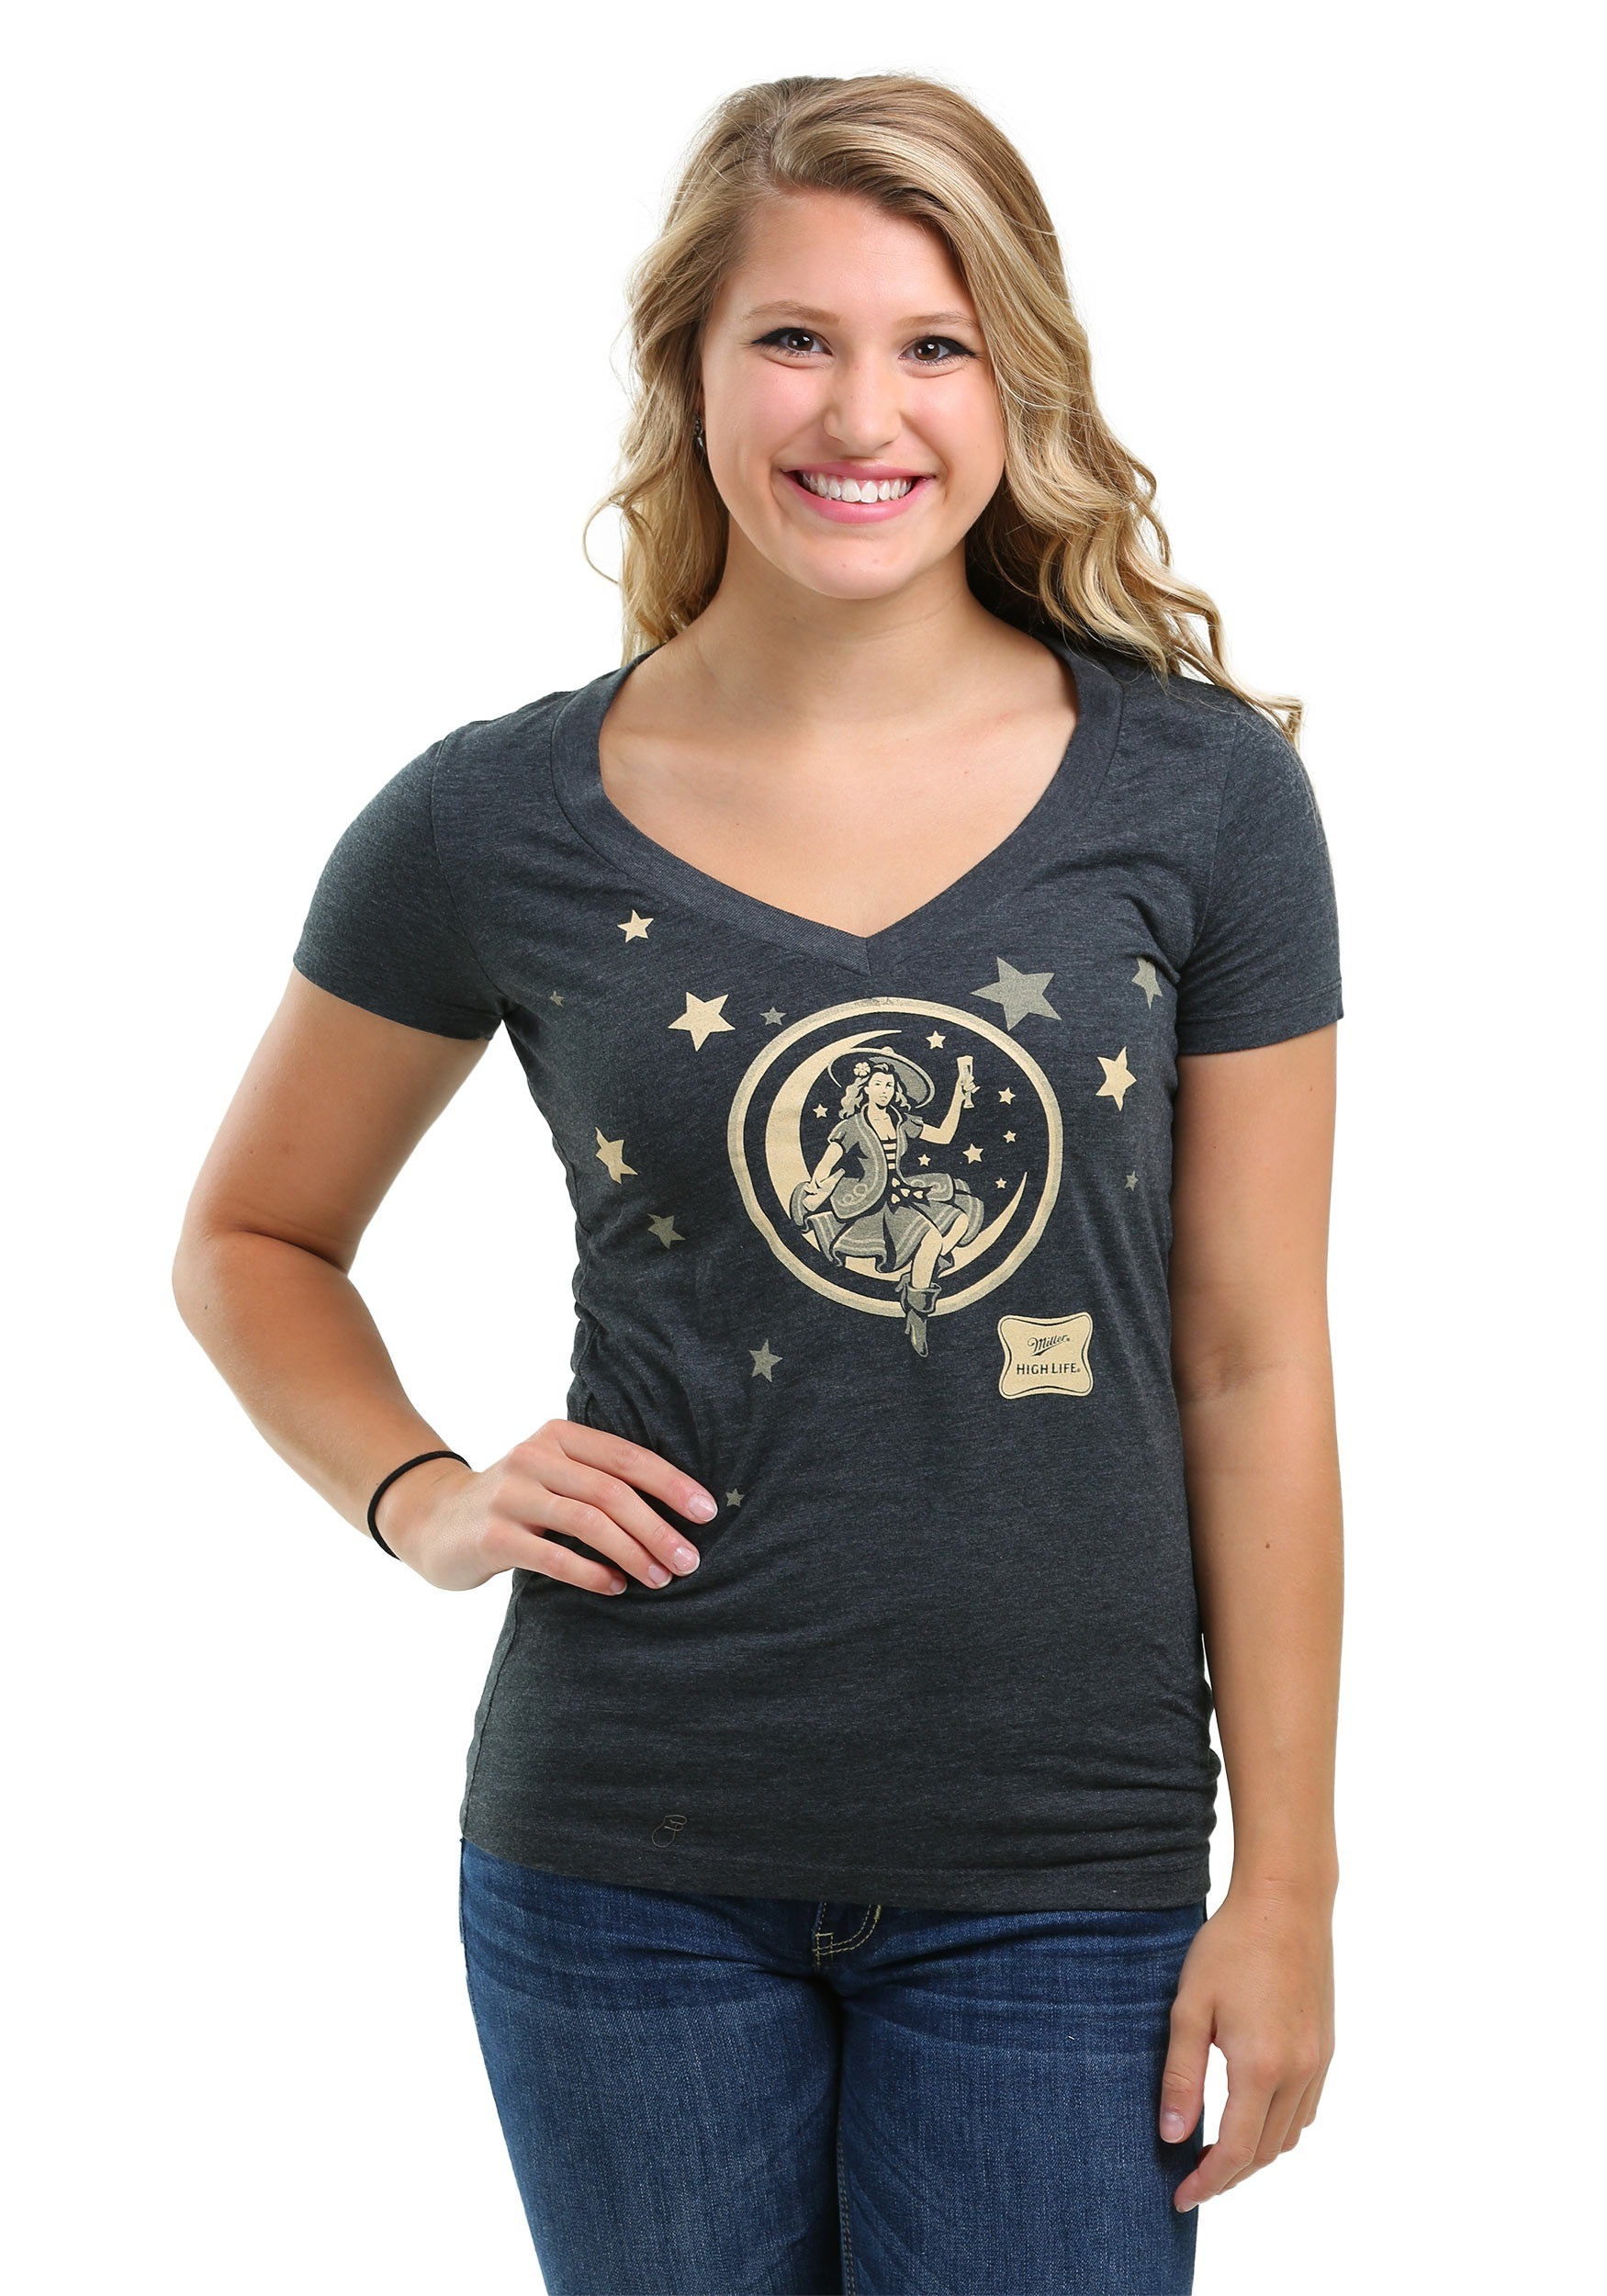 Miller high life moon girl v neck t shirt for women for High neck tee shirts